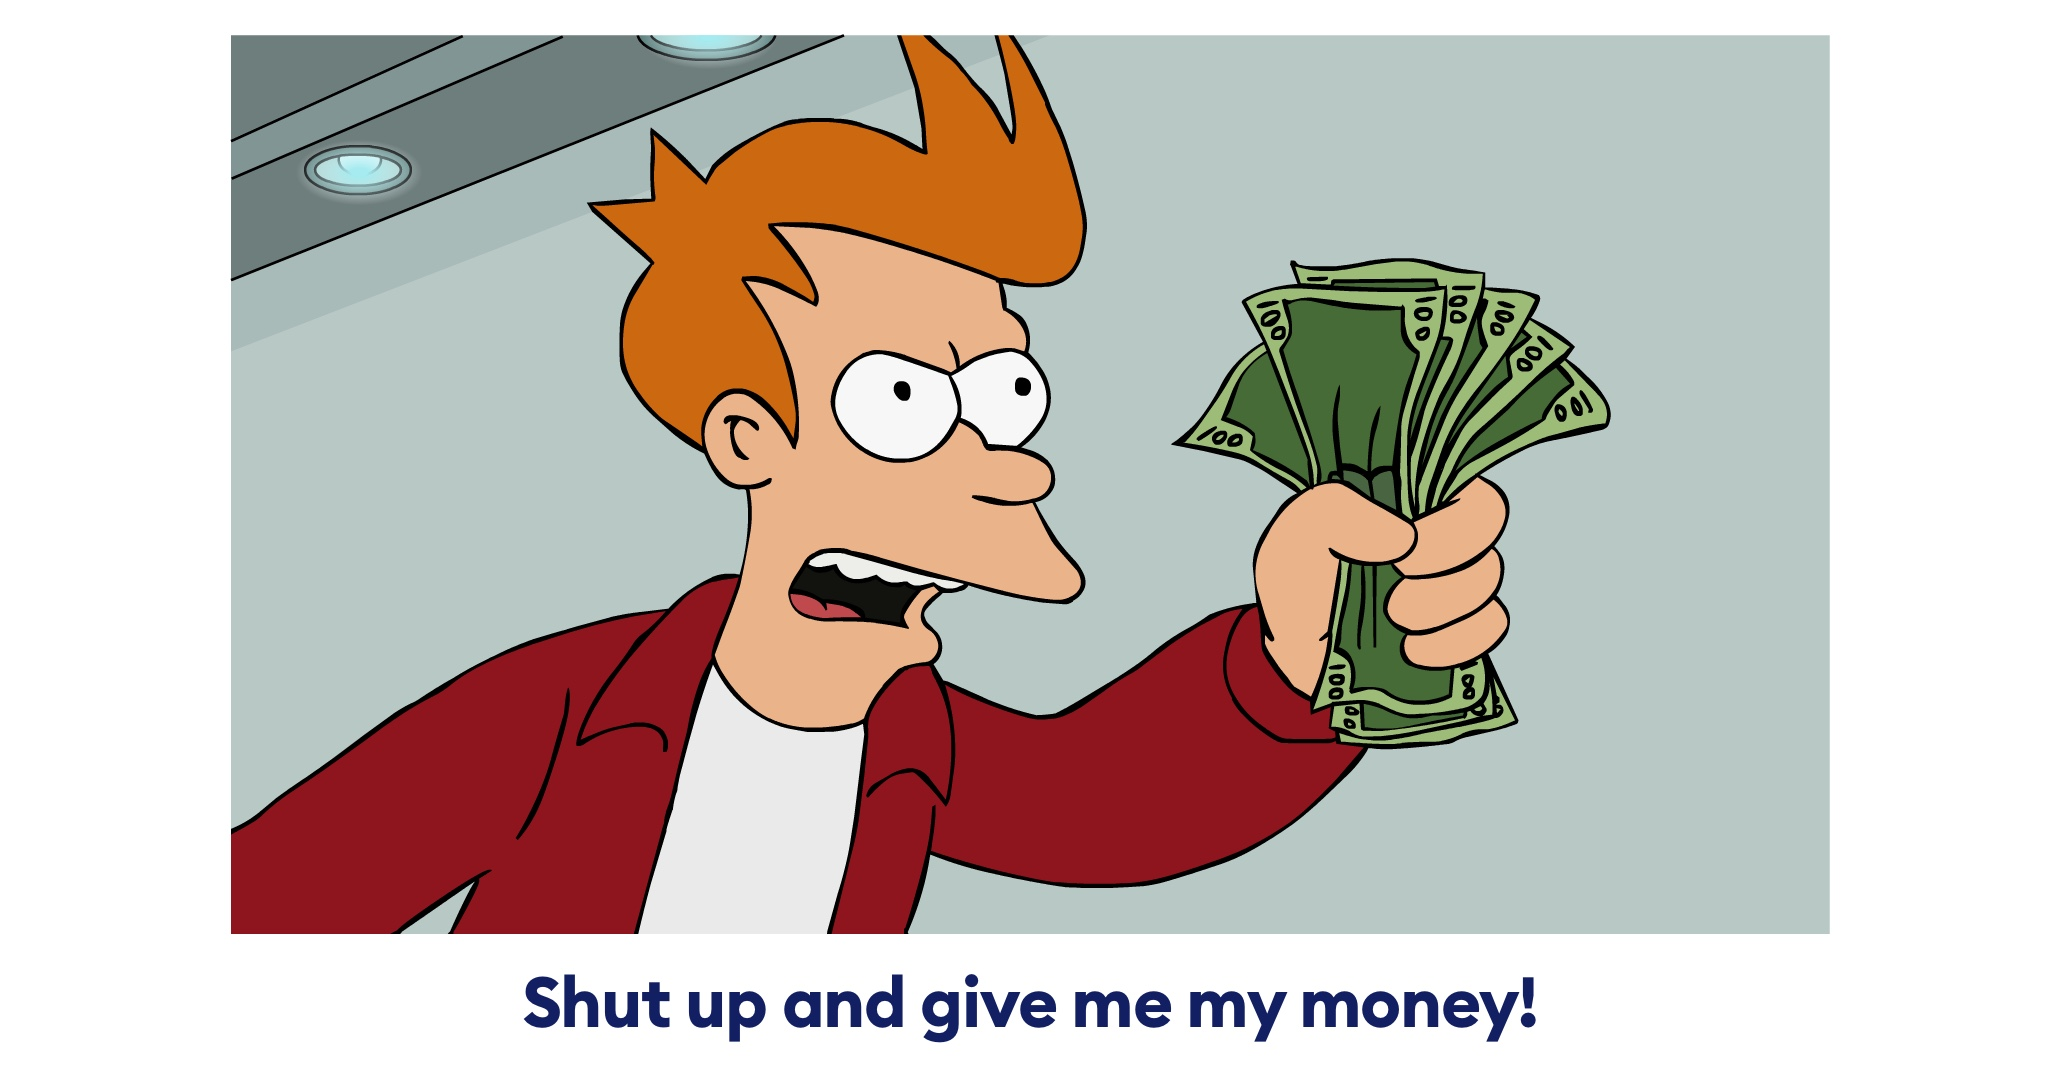 universal basic income or shut up and give me my money!